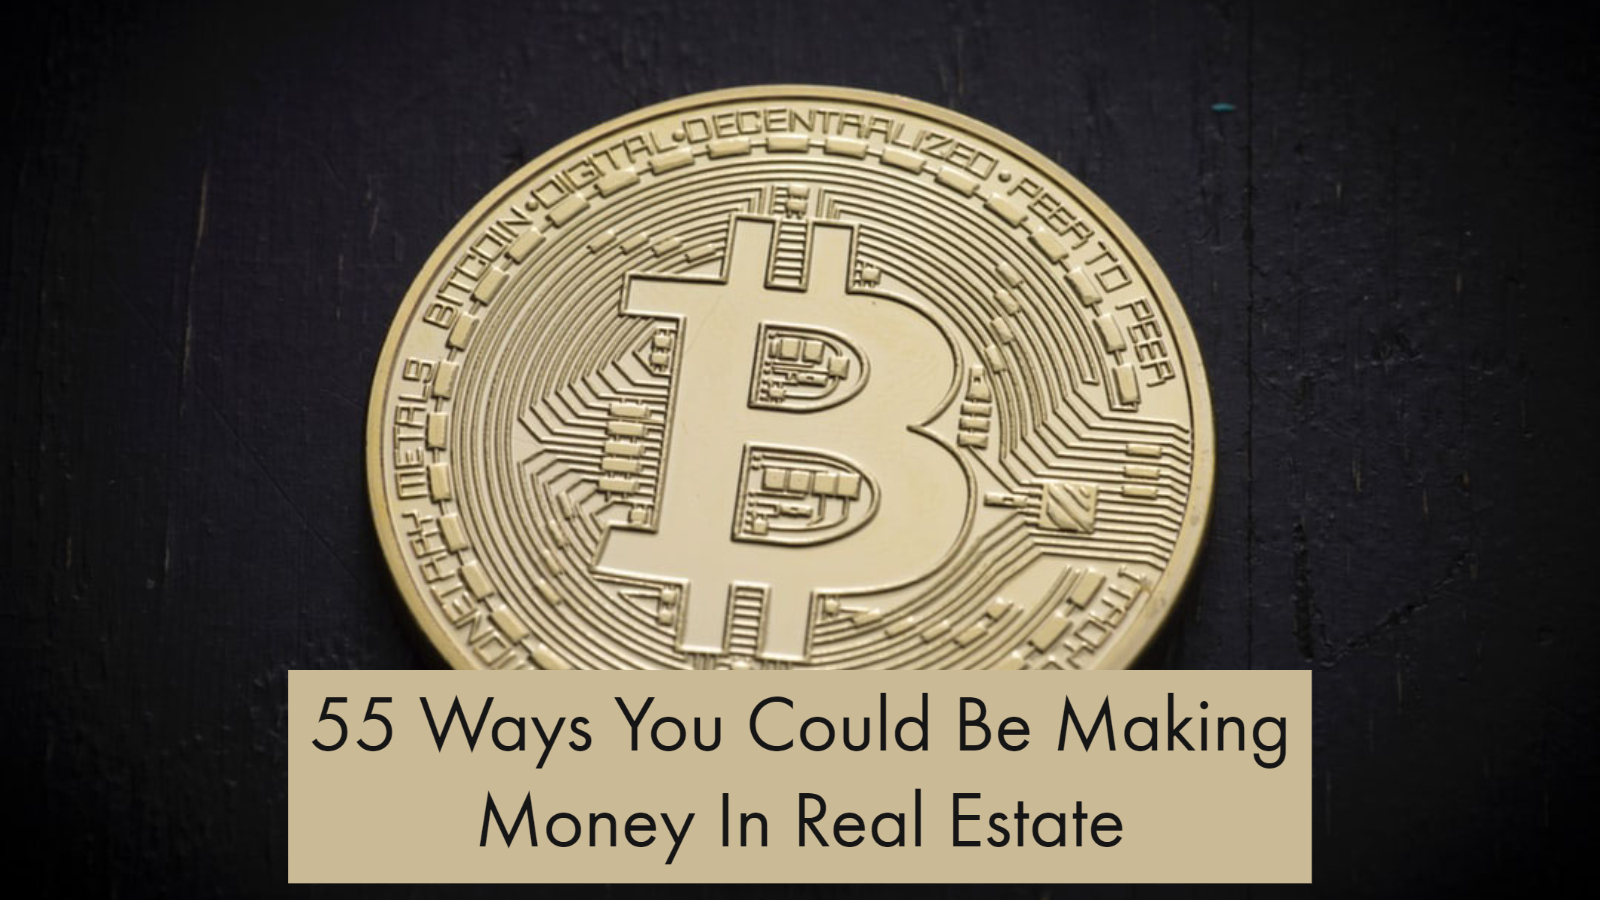 """55 Ways You Could Be Making Money In Real Estate"" No."